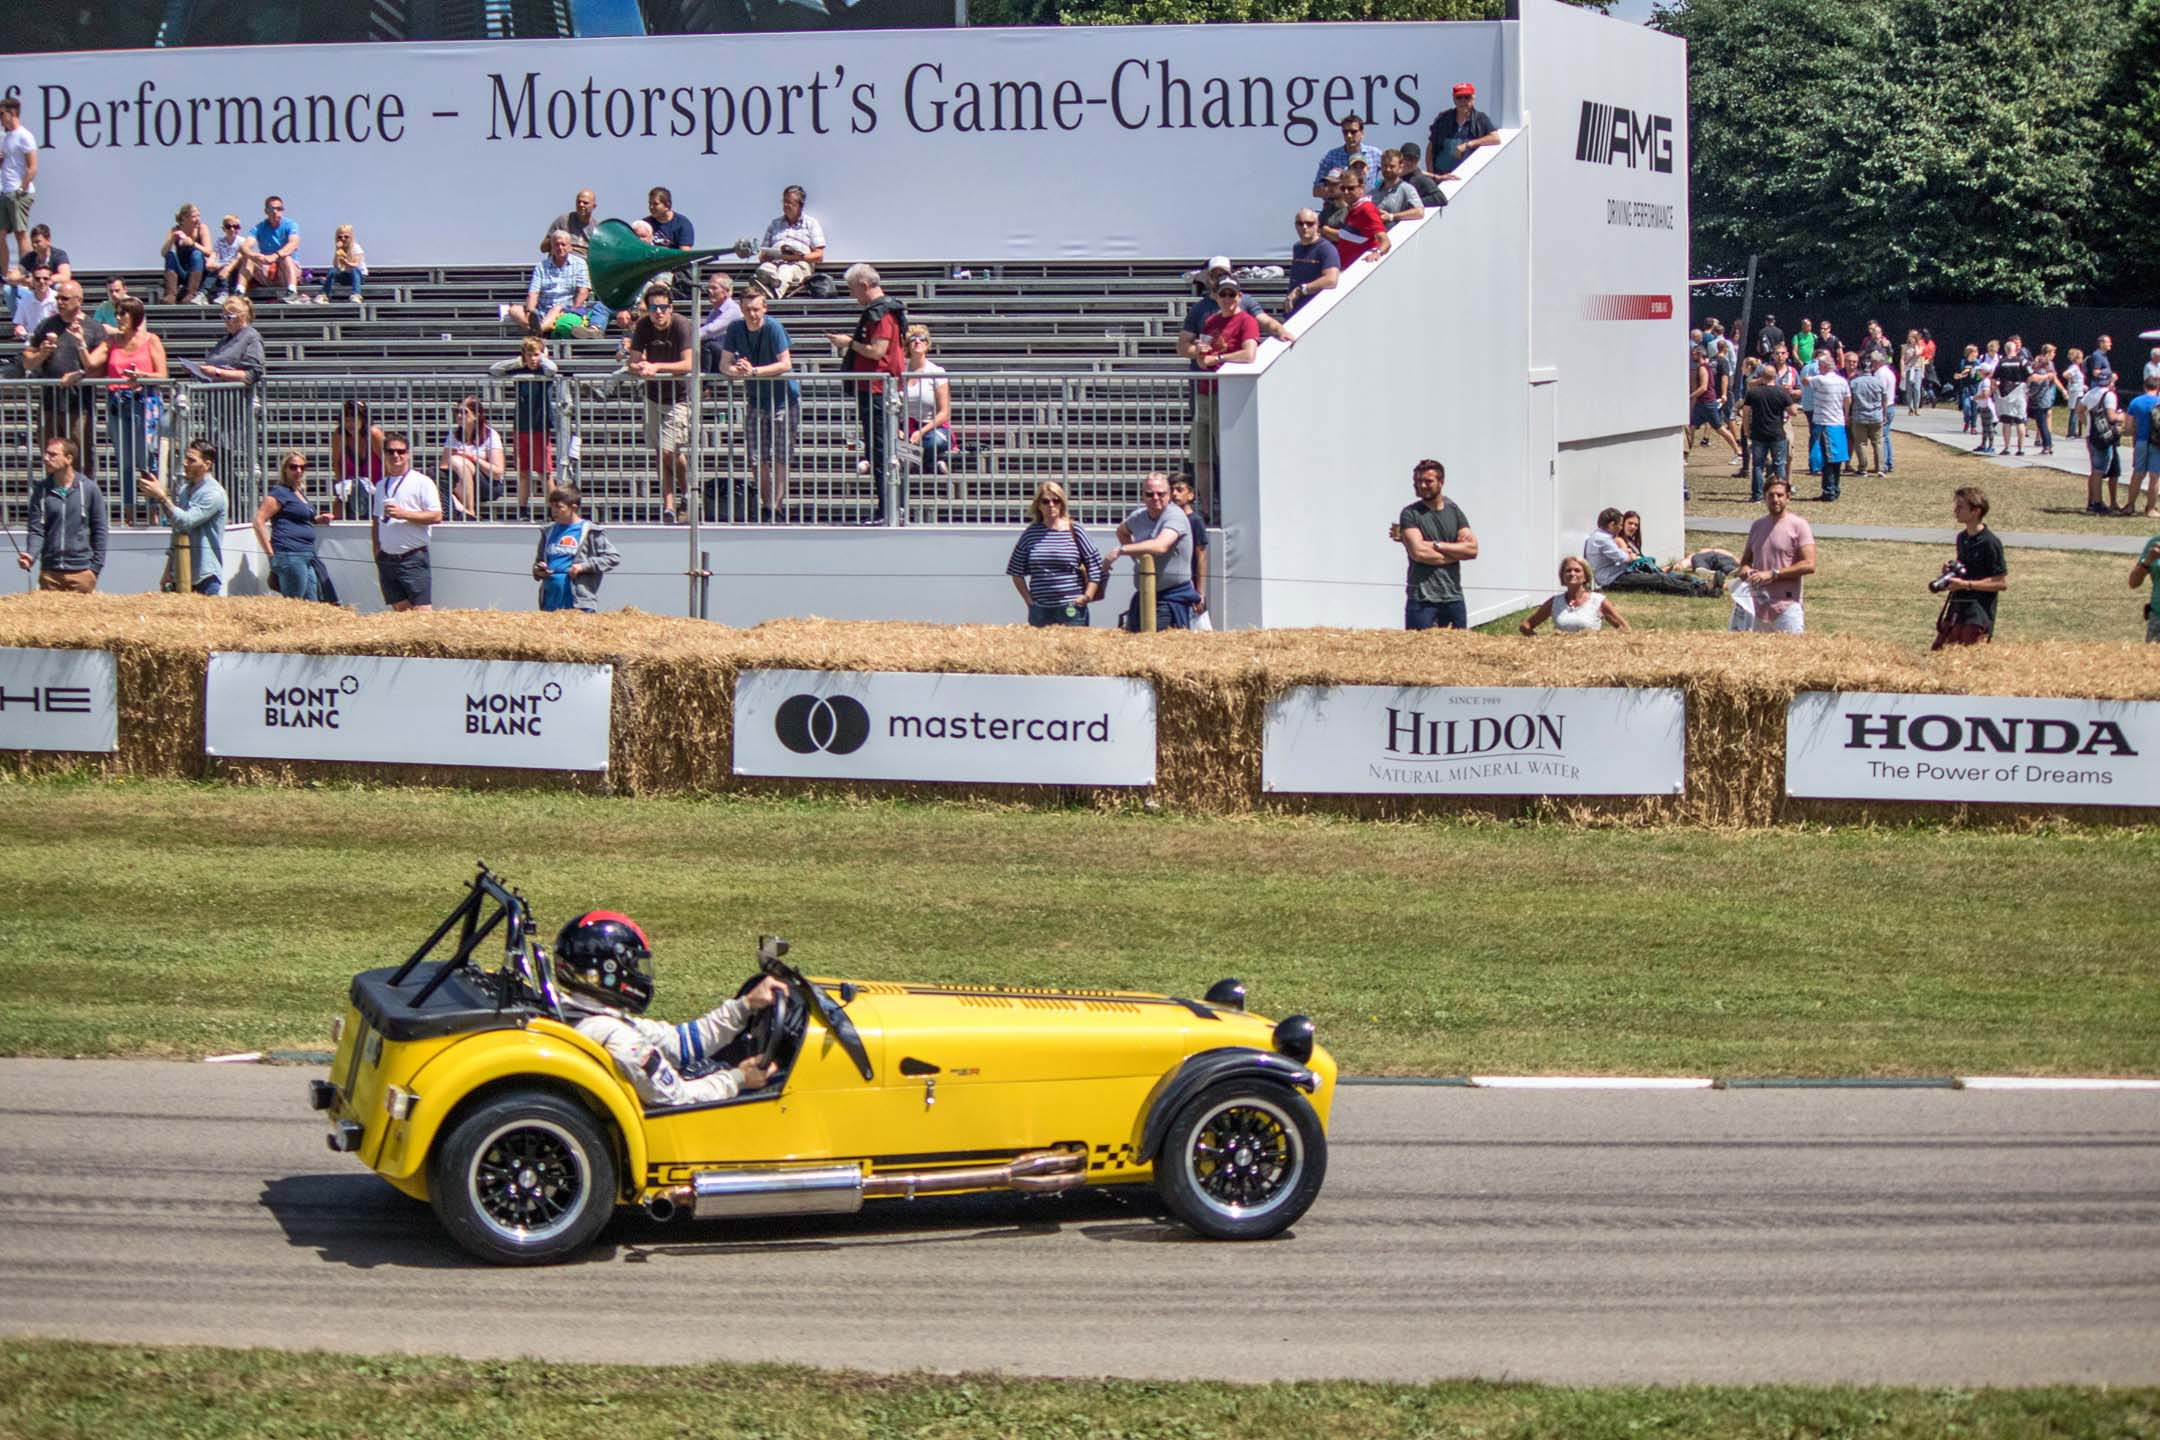 A Caterham 620R gets completely sideways, just on its way back to the staging area. Despite being a half-century old design, the Caterham was the second quickest car up the hill, beating out all the supercars.